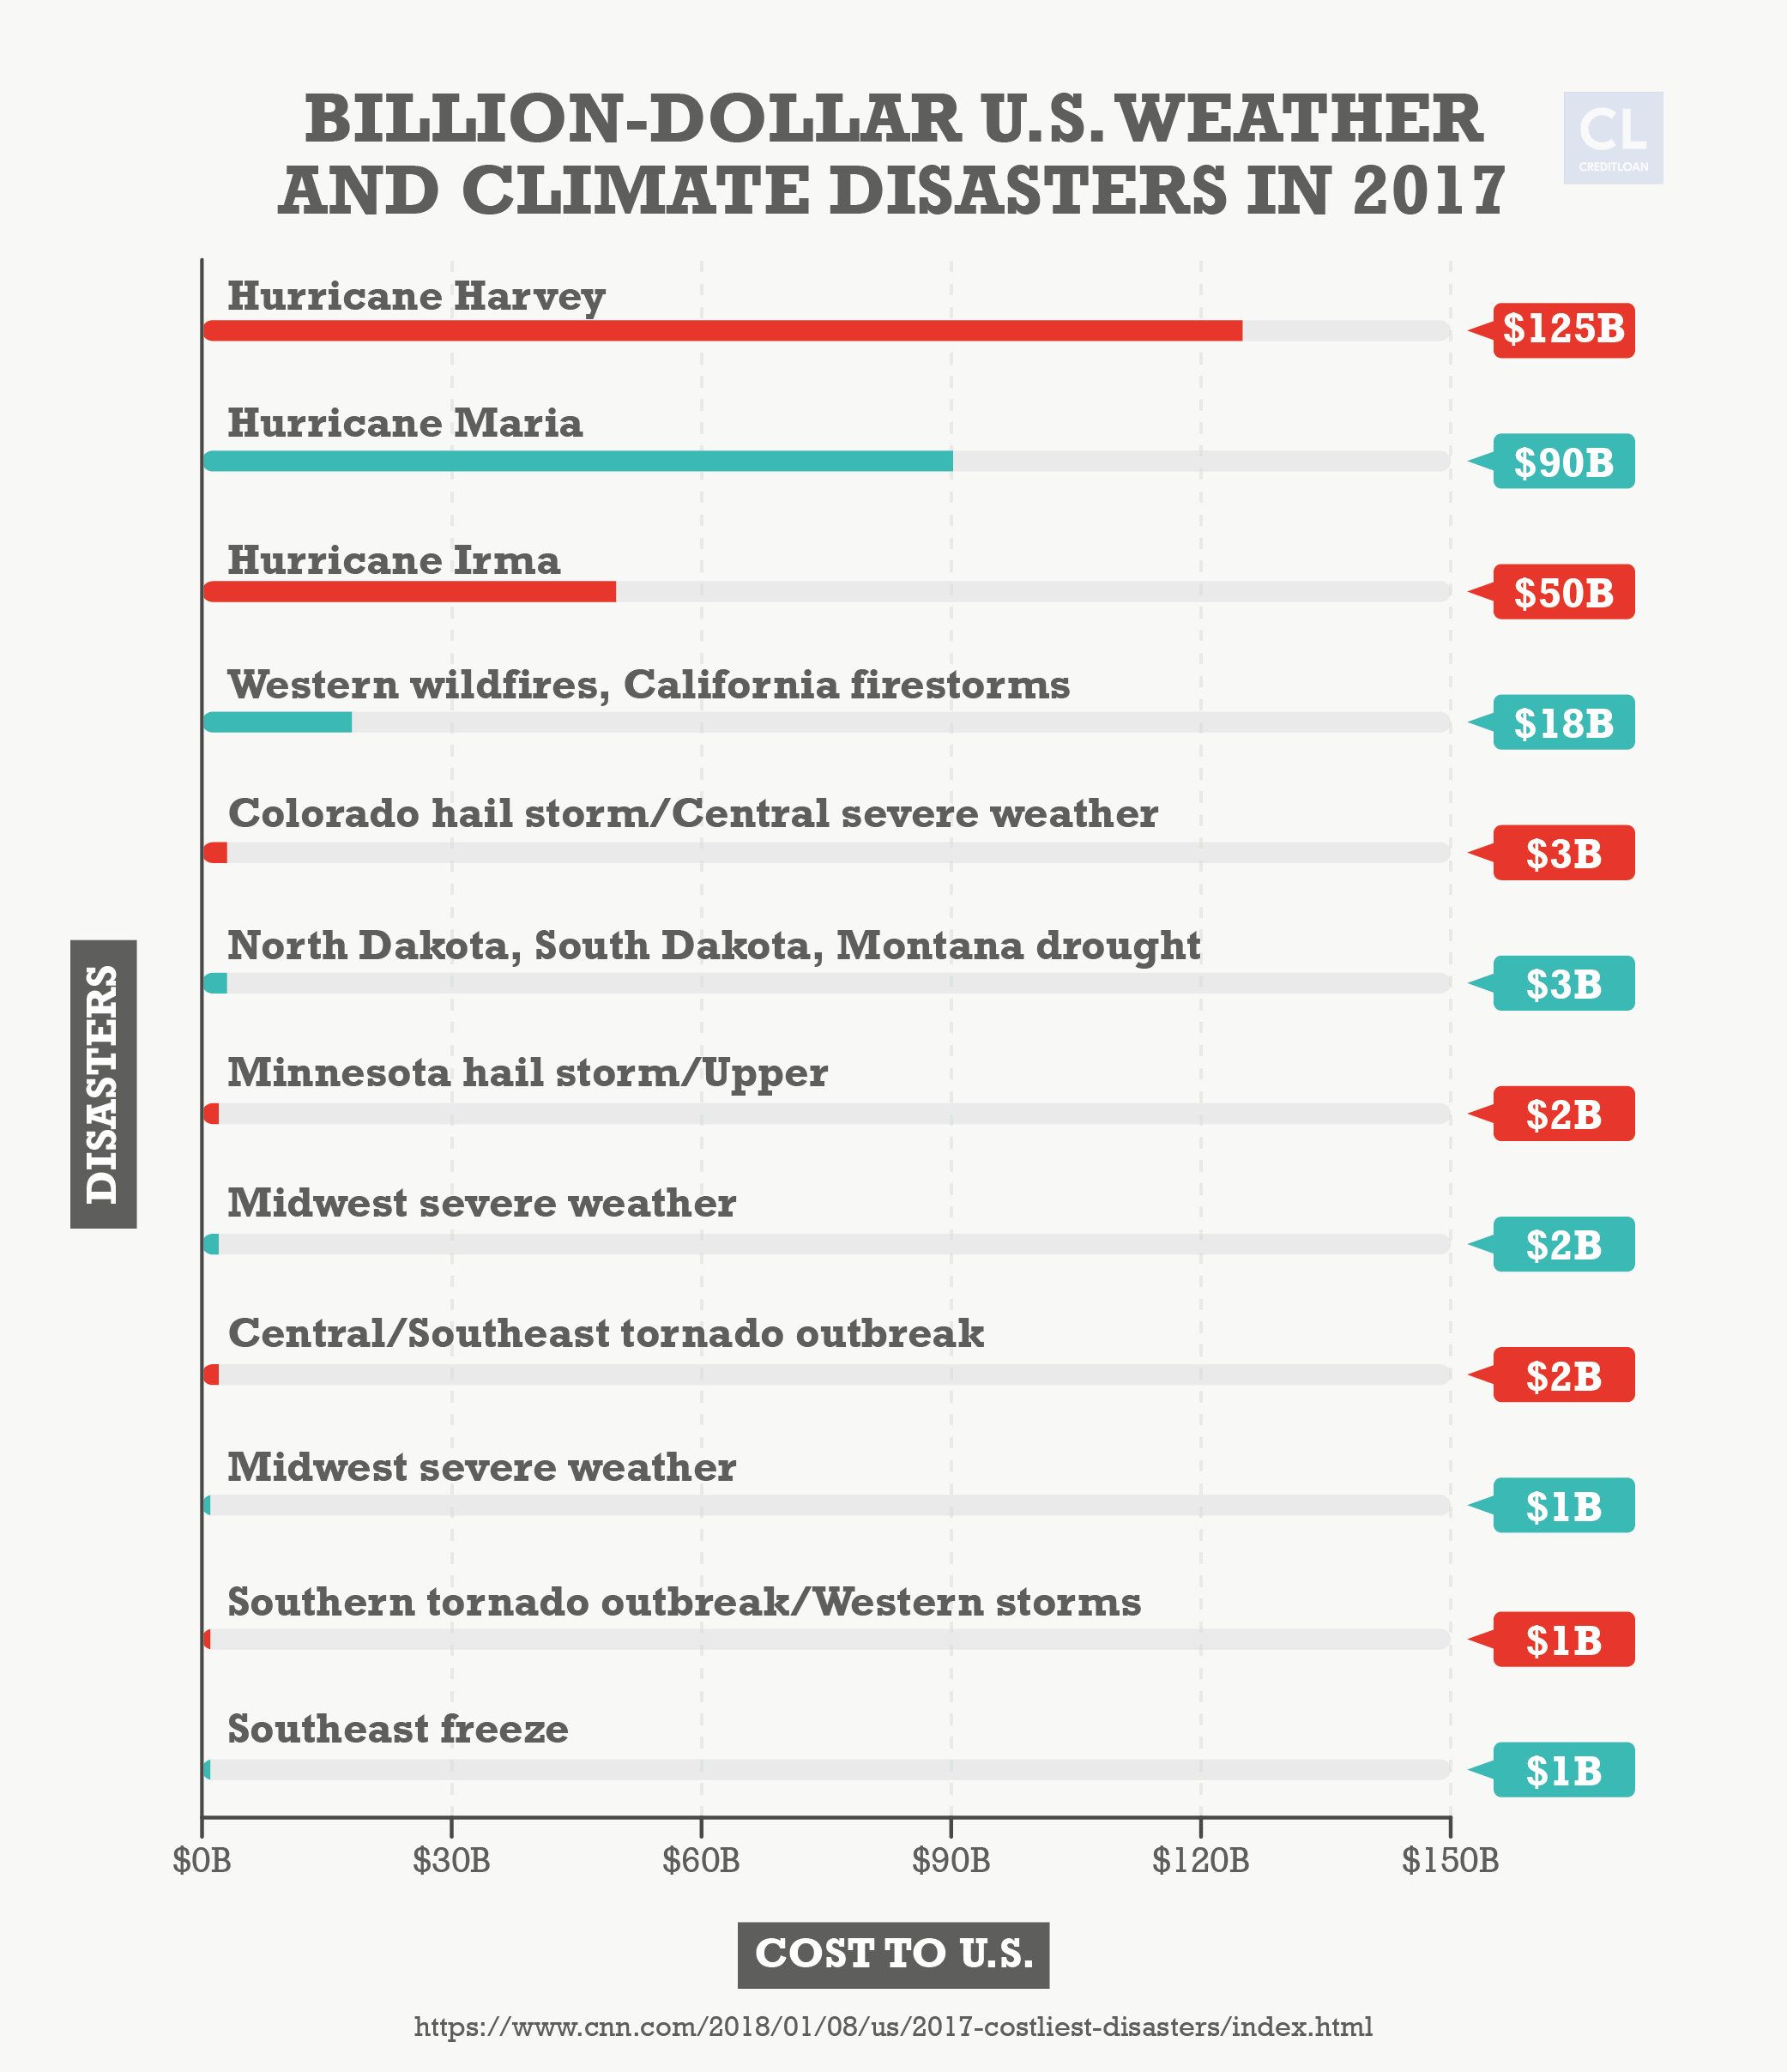 Billion-dollar U.S. Weather and Climate Disasters in 2017